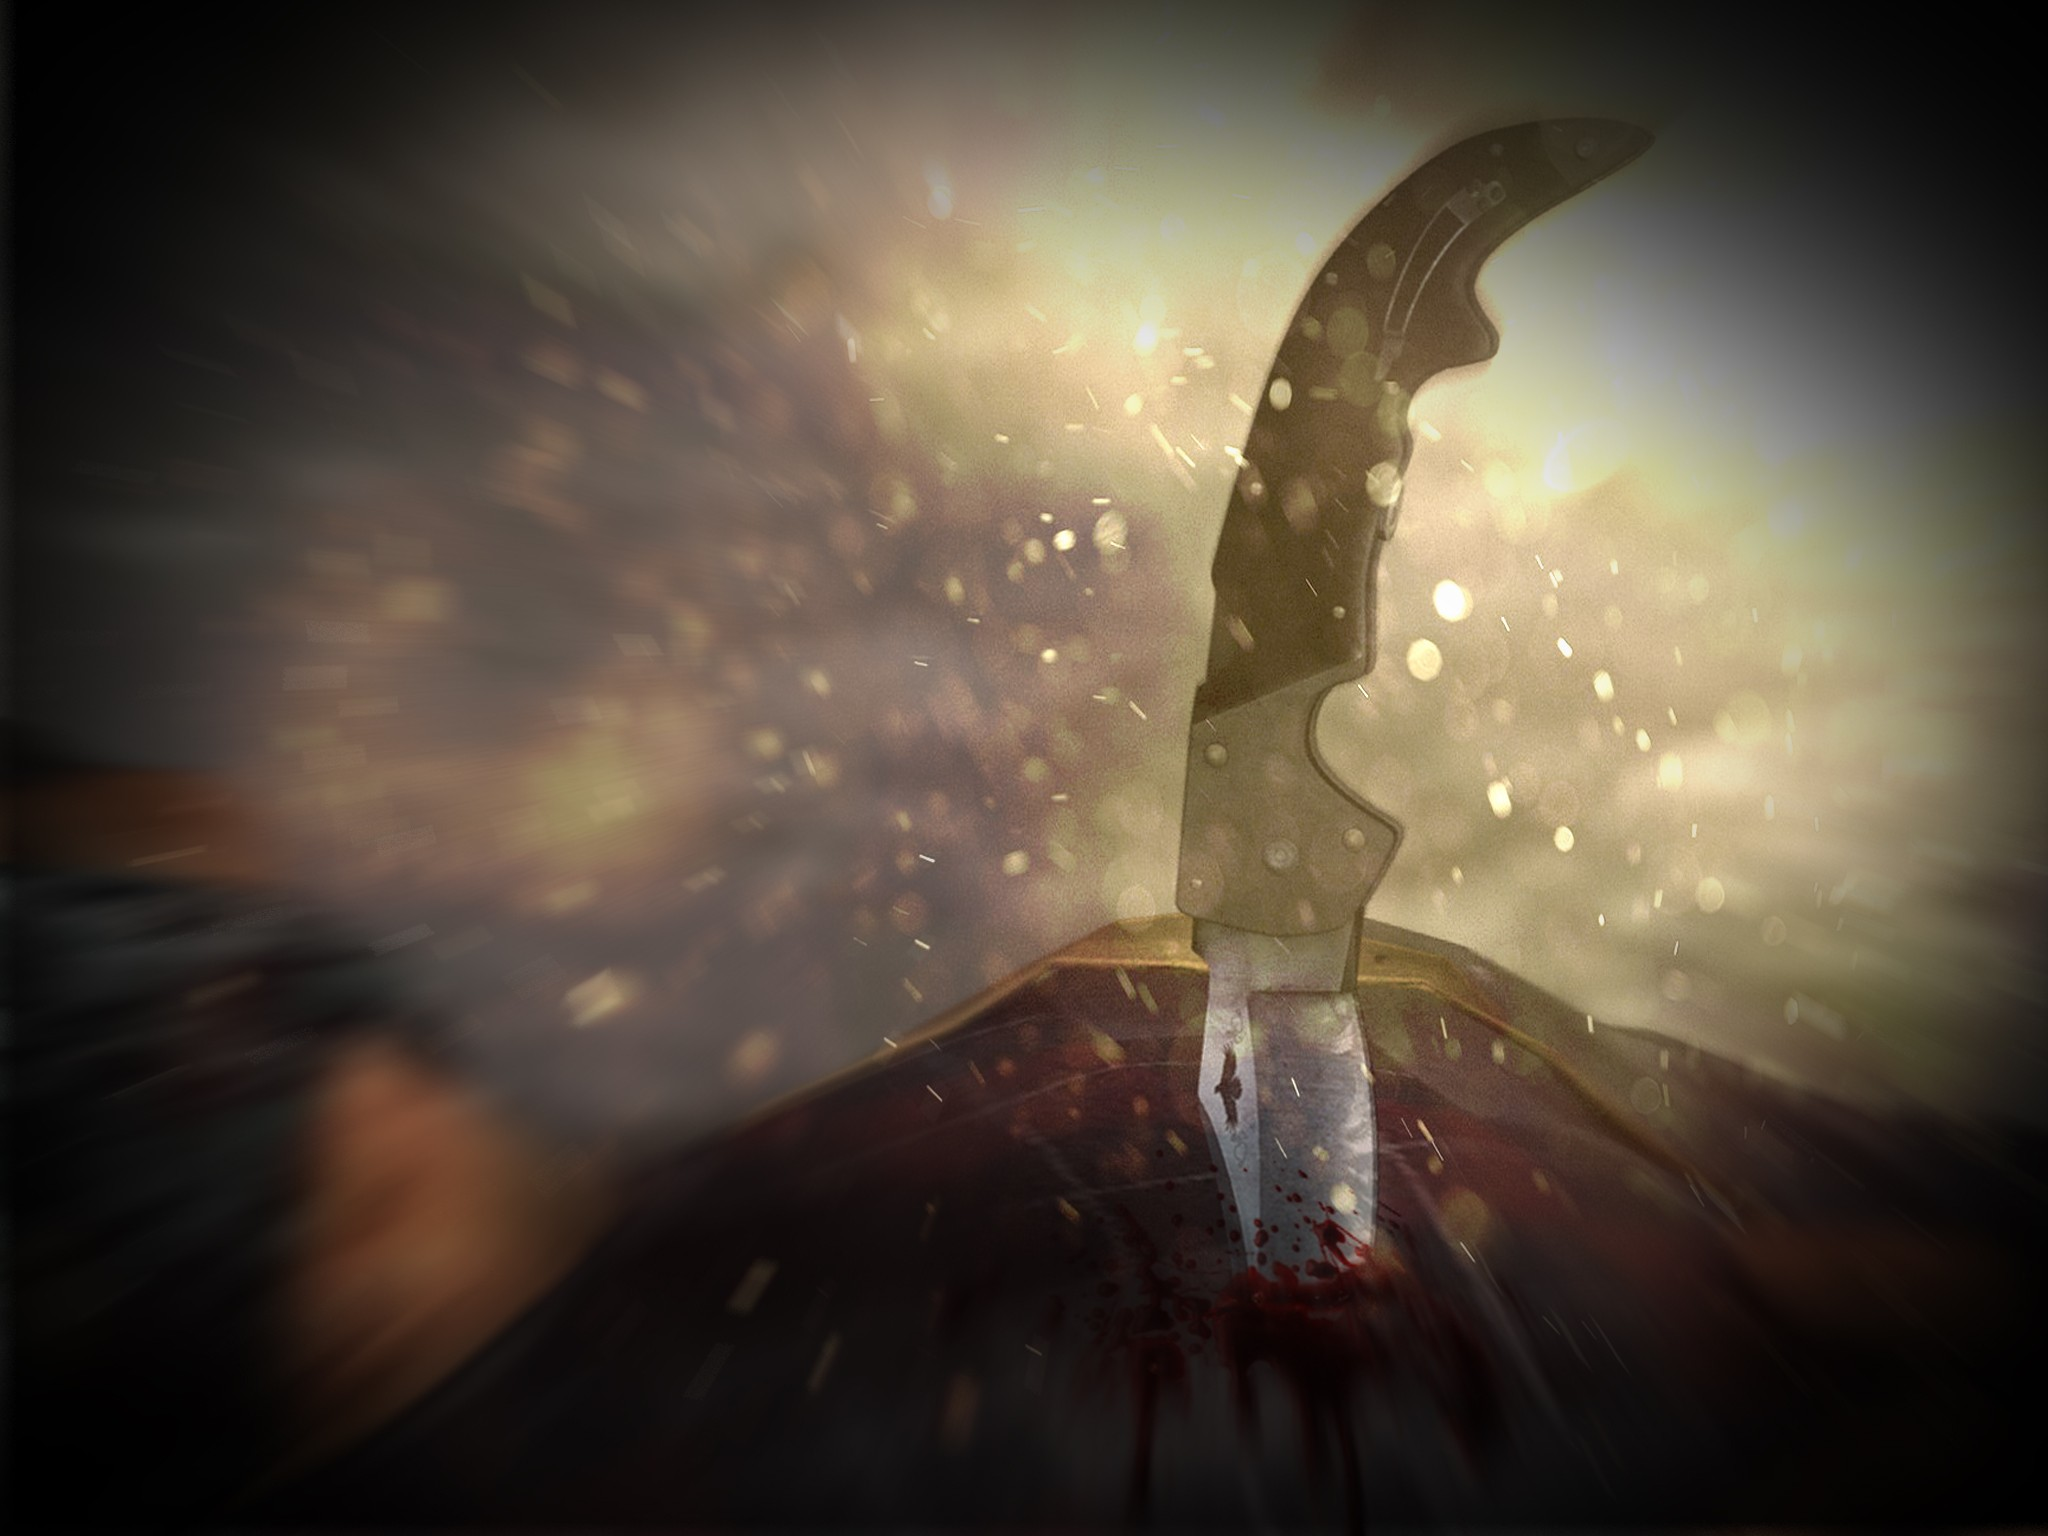 Best 61 Falchion Wallpaper on HipWallpaper Falchion Wallpaper 2048x1536